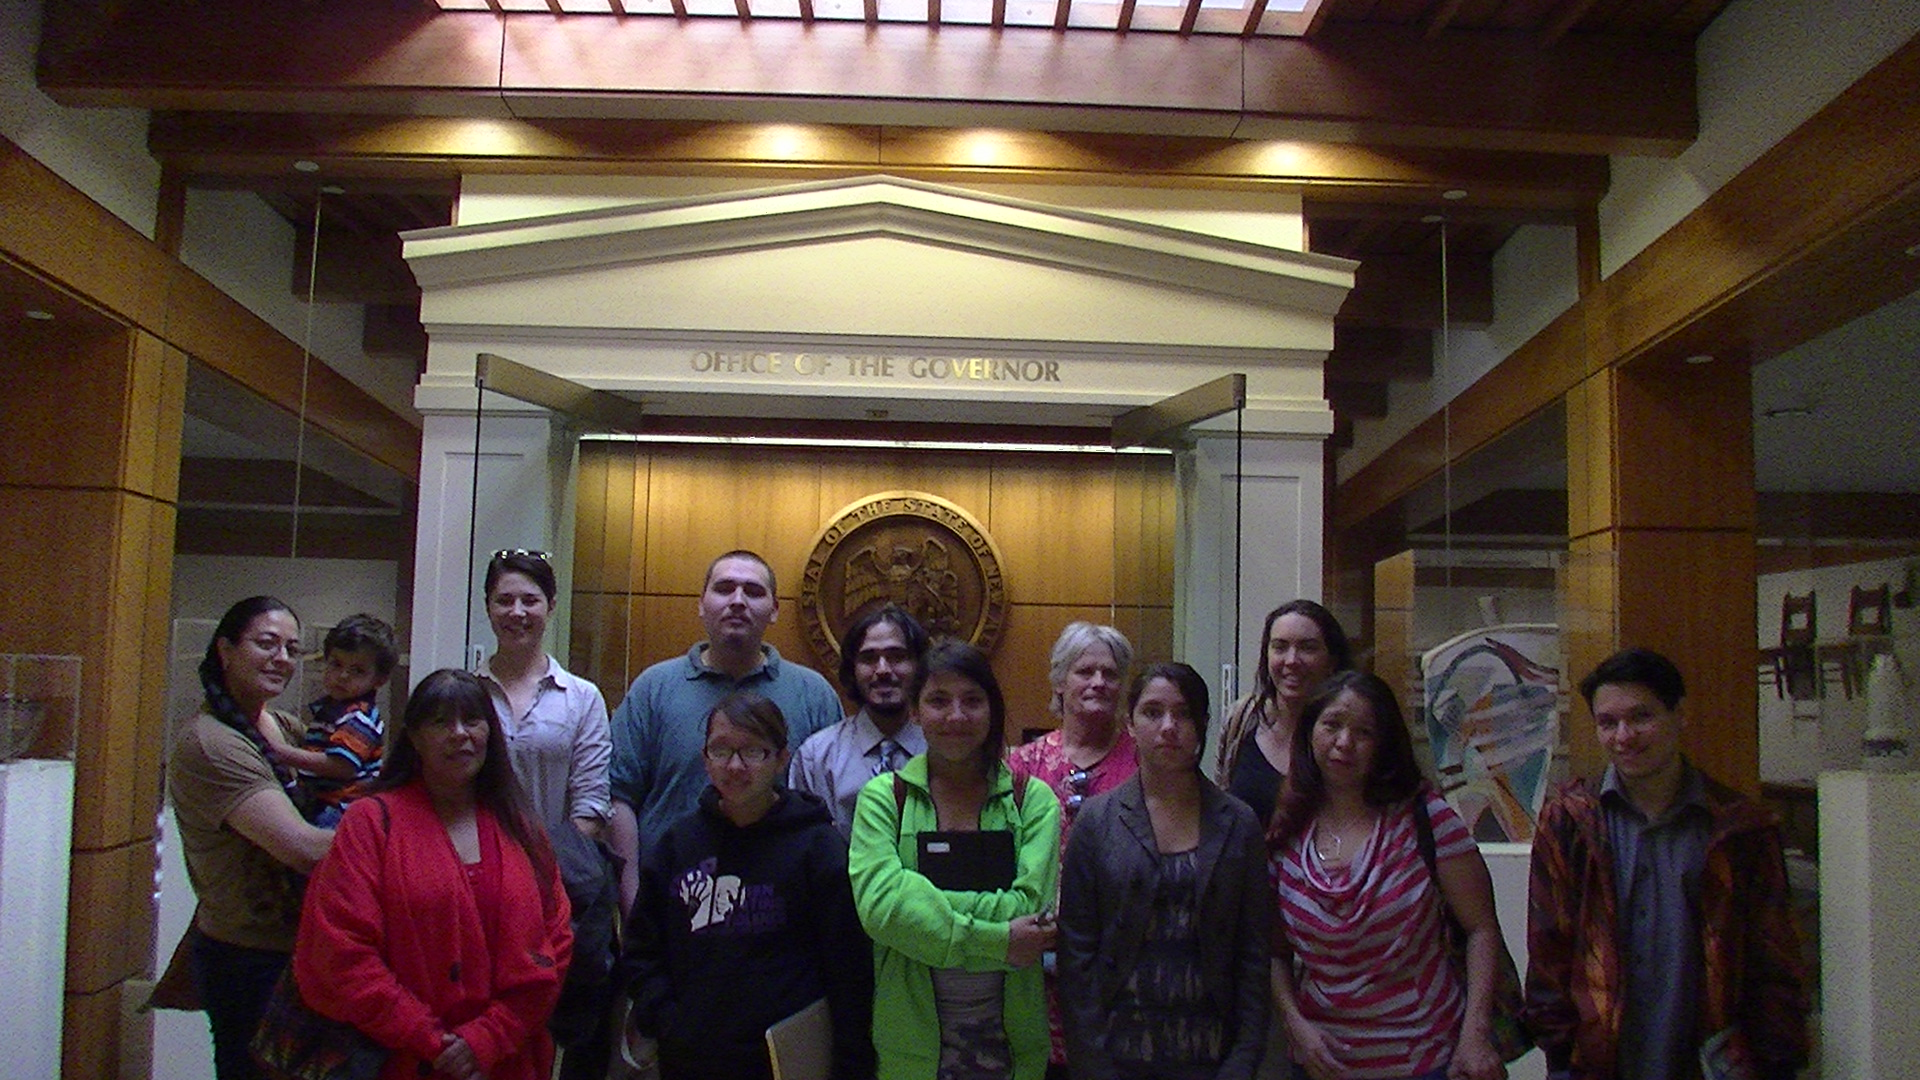 CCW Youth Council visits the State Capitol in Santa Fe